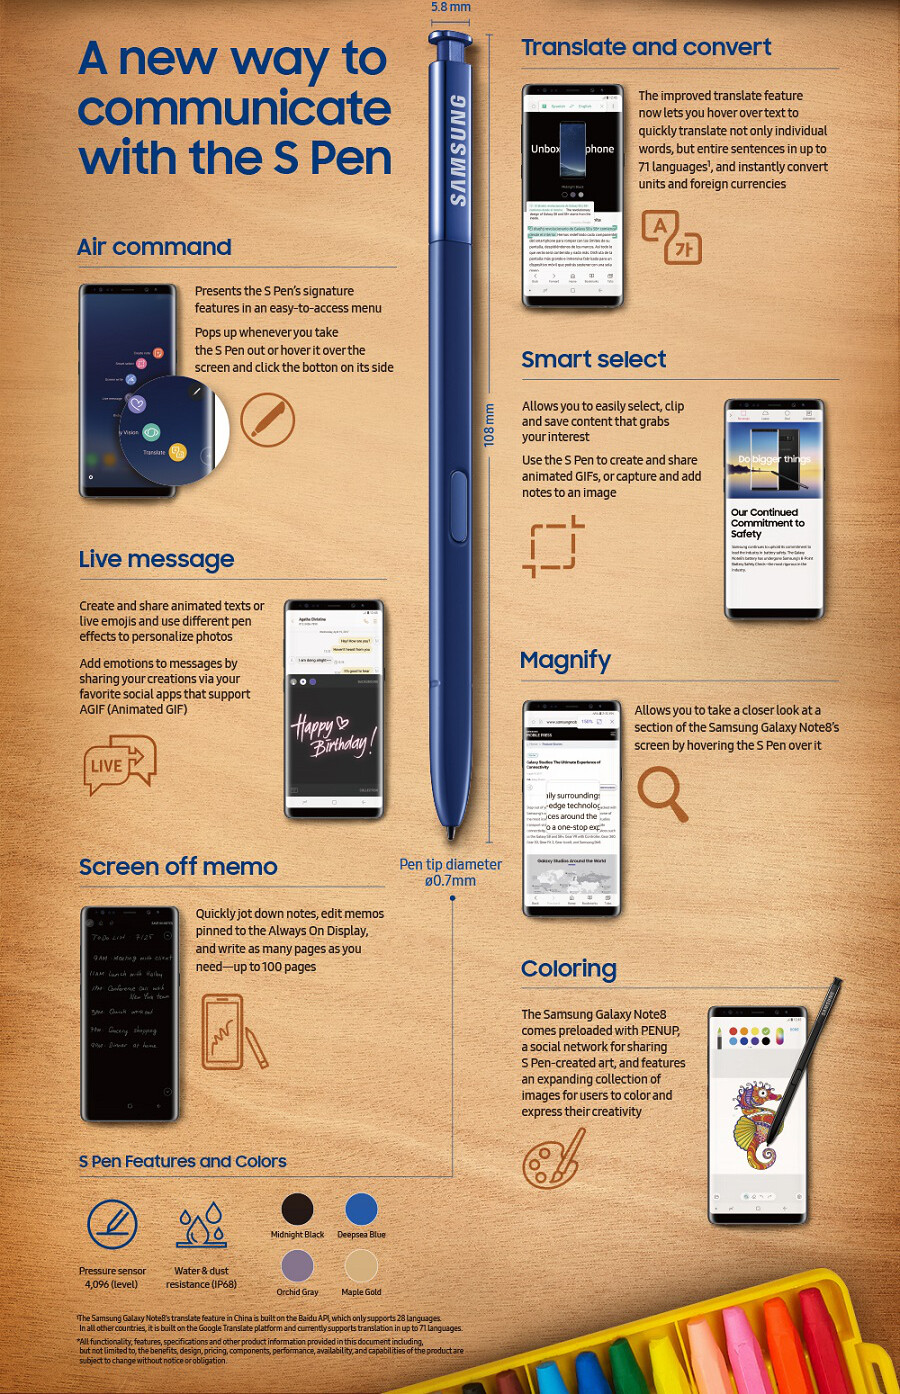 Samsung Galaxy Note 8 S Pen: all new features